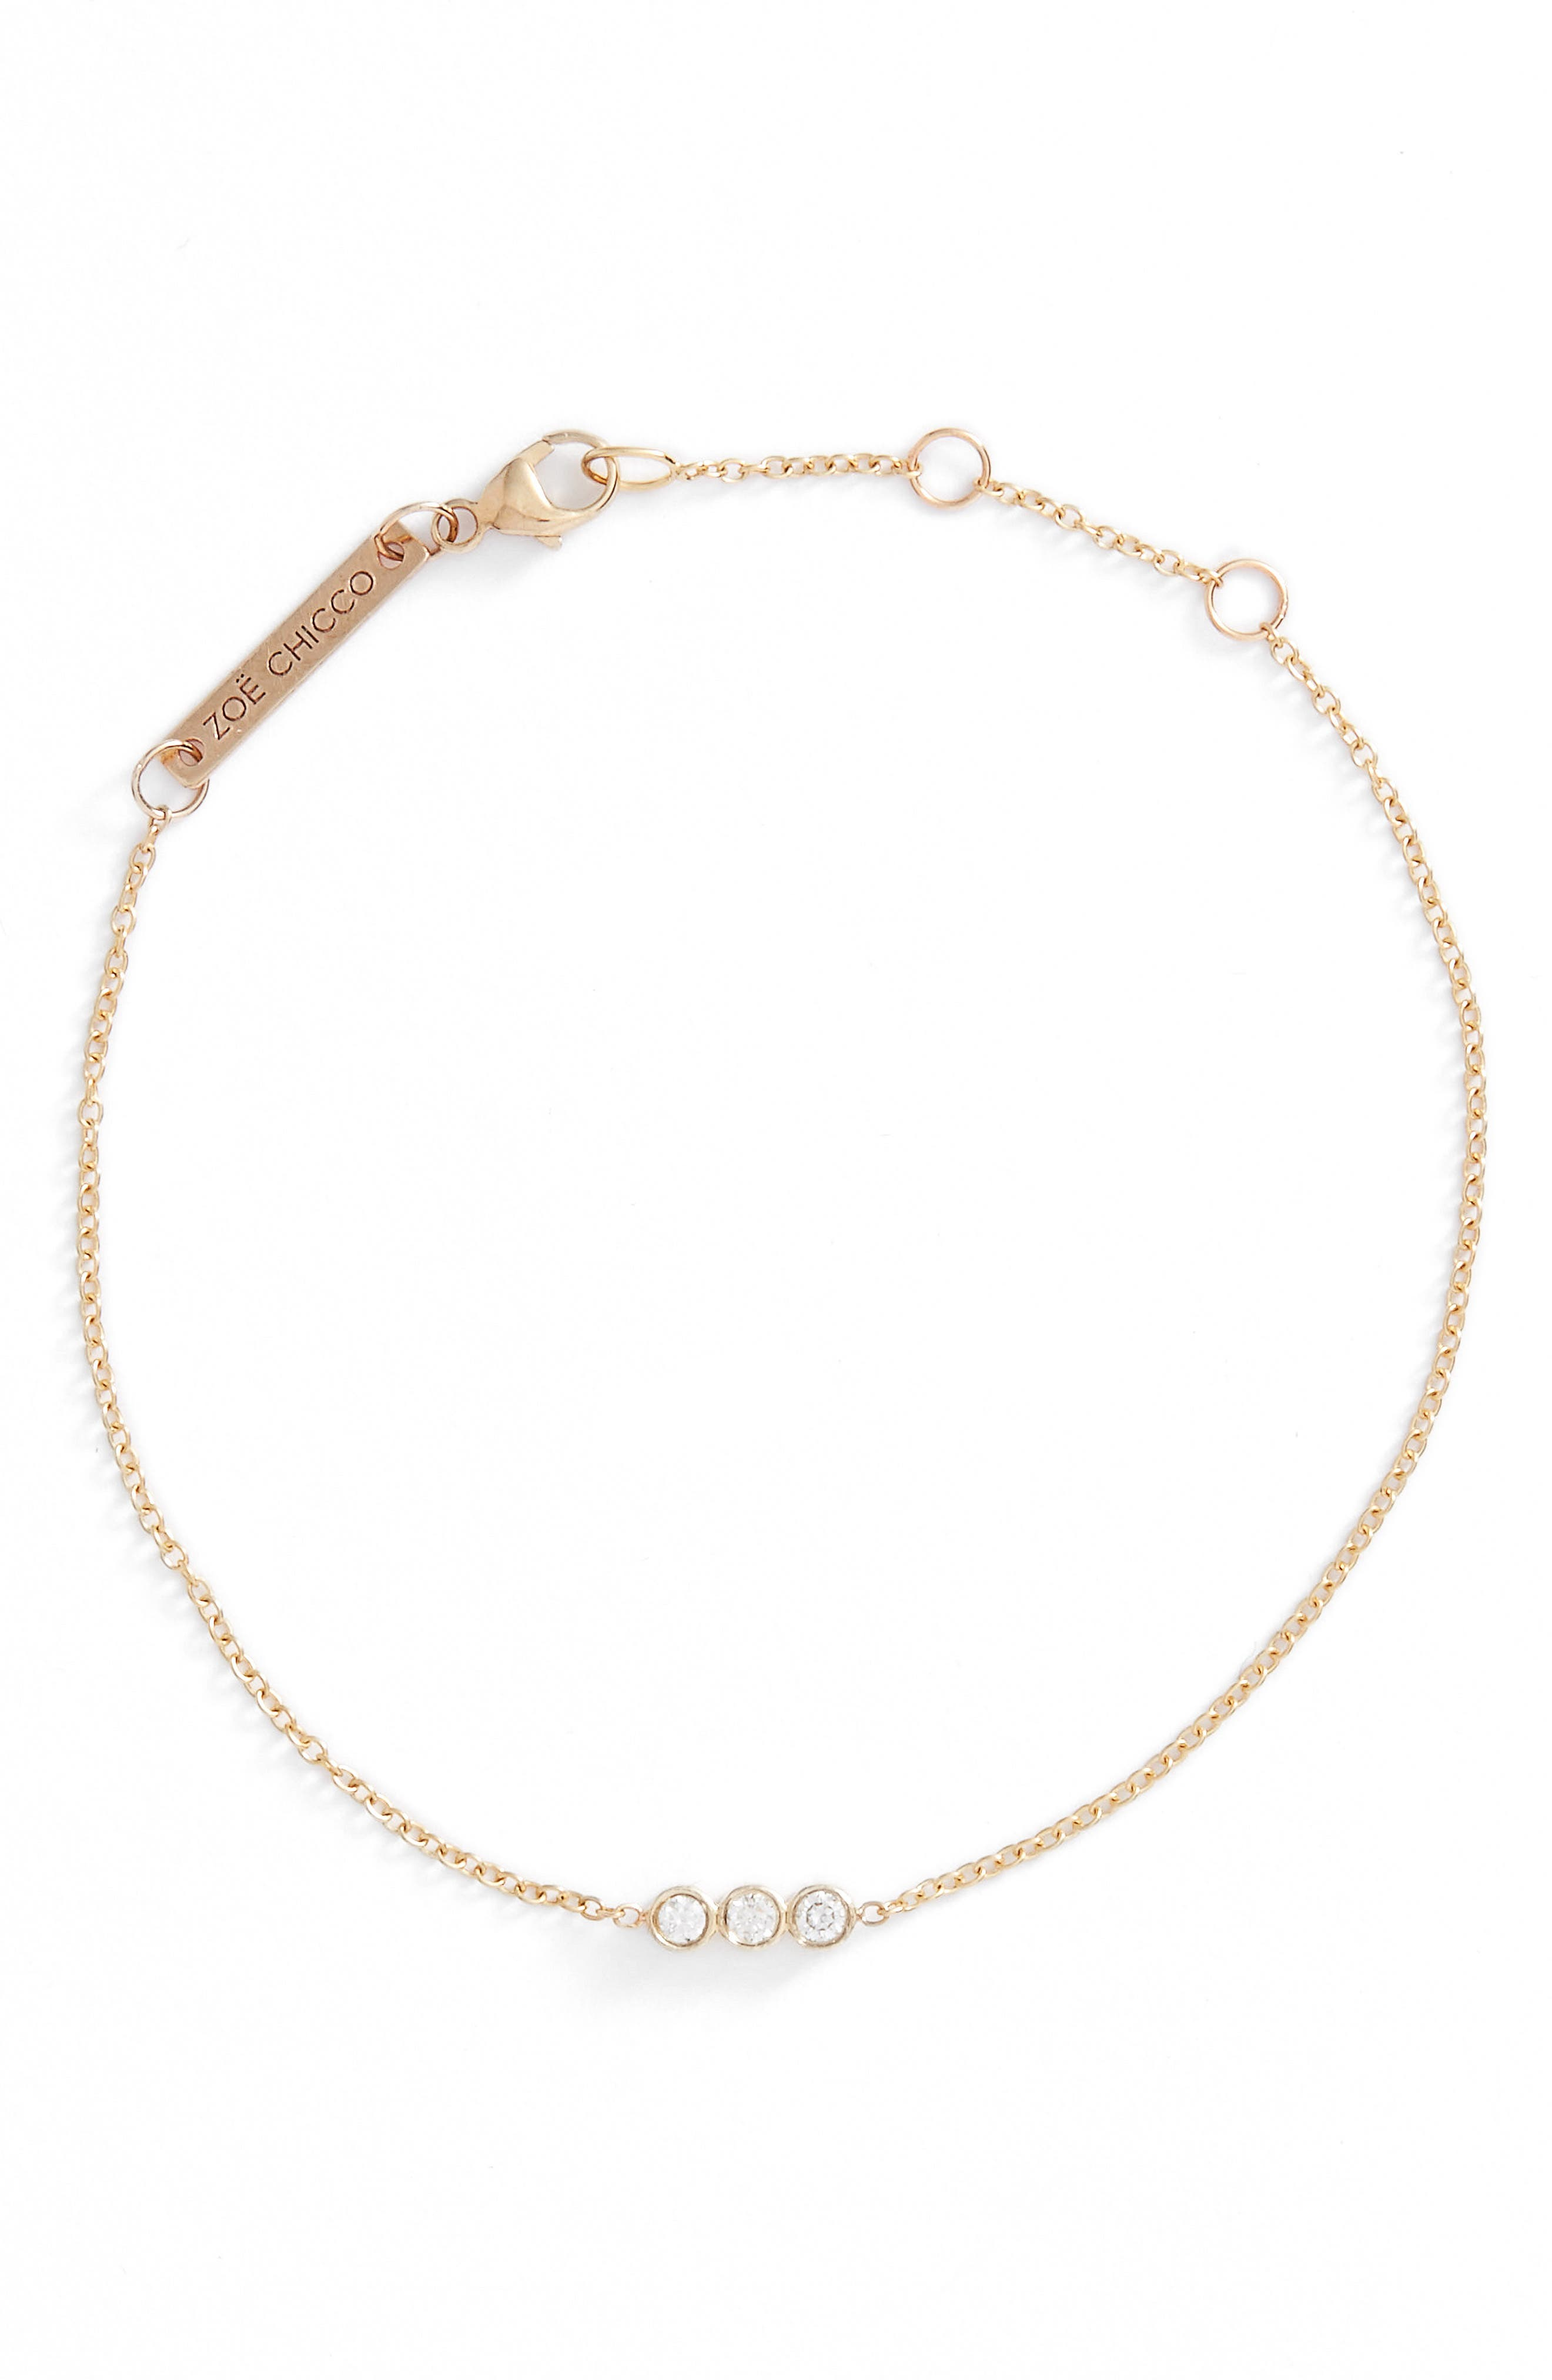 Main Image - Zoë Chicco Diamond Bezel Bar Line Bracelet